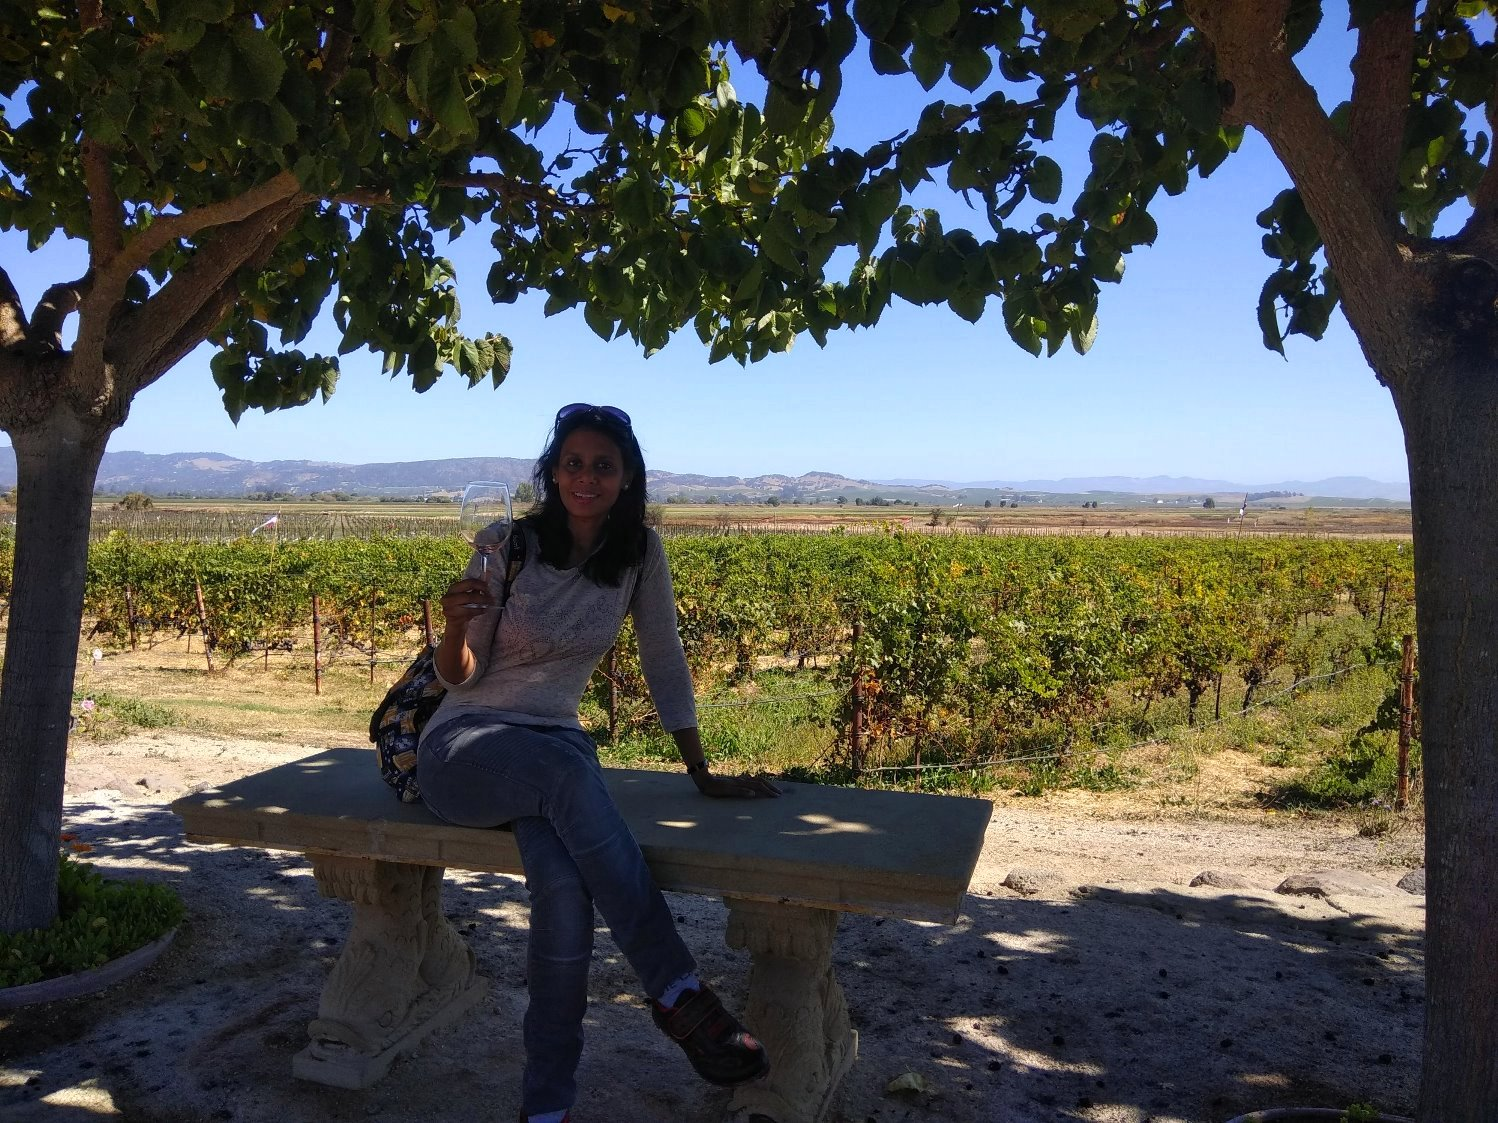 Vineyards and wine musings